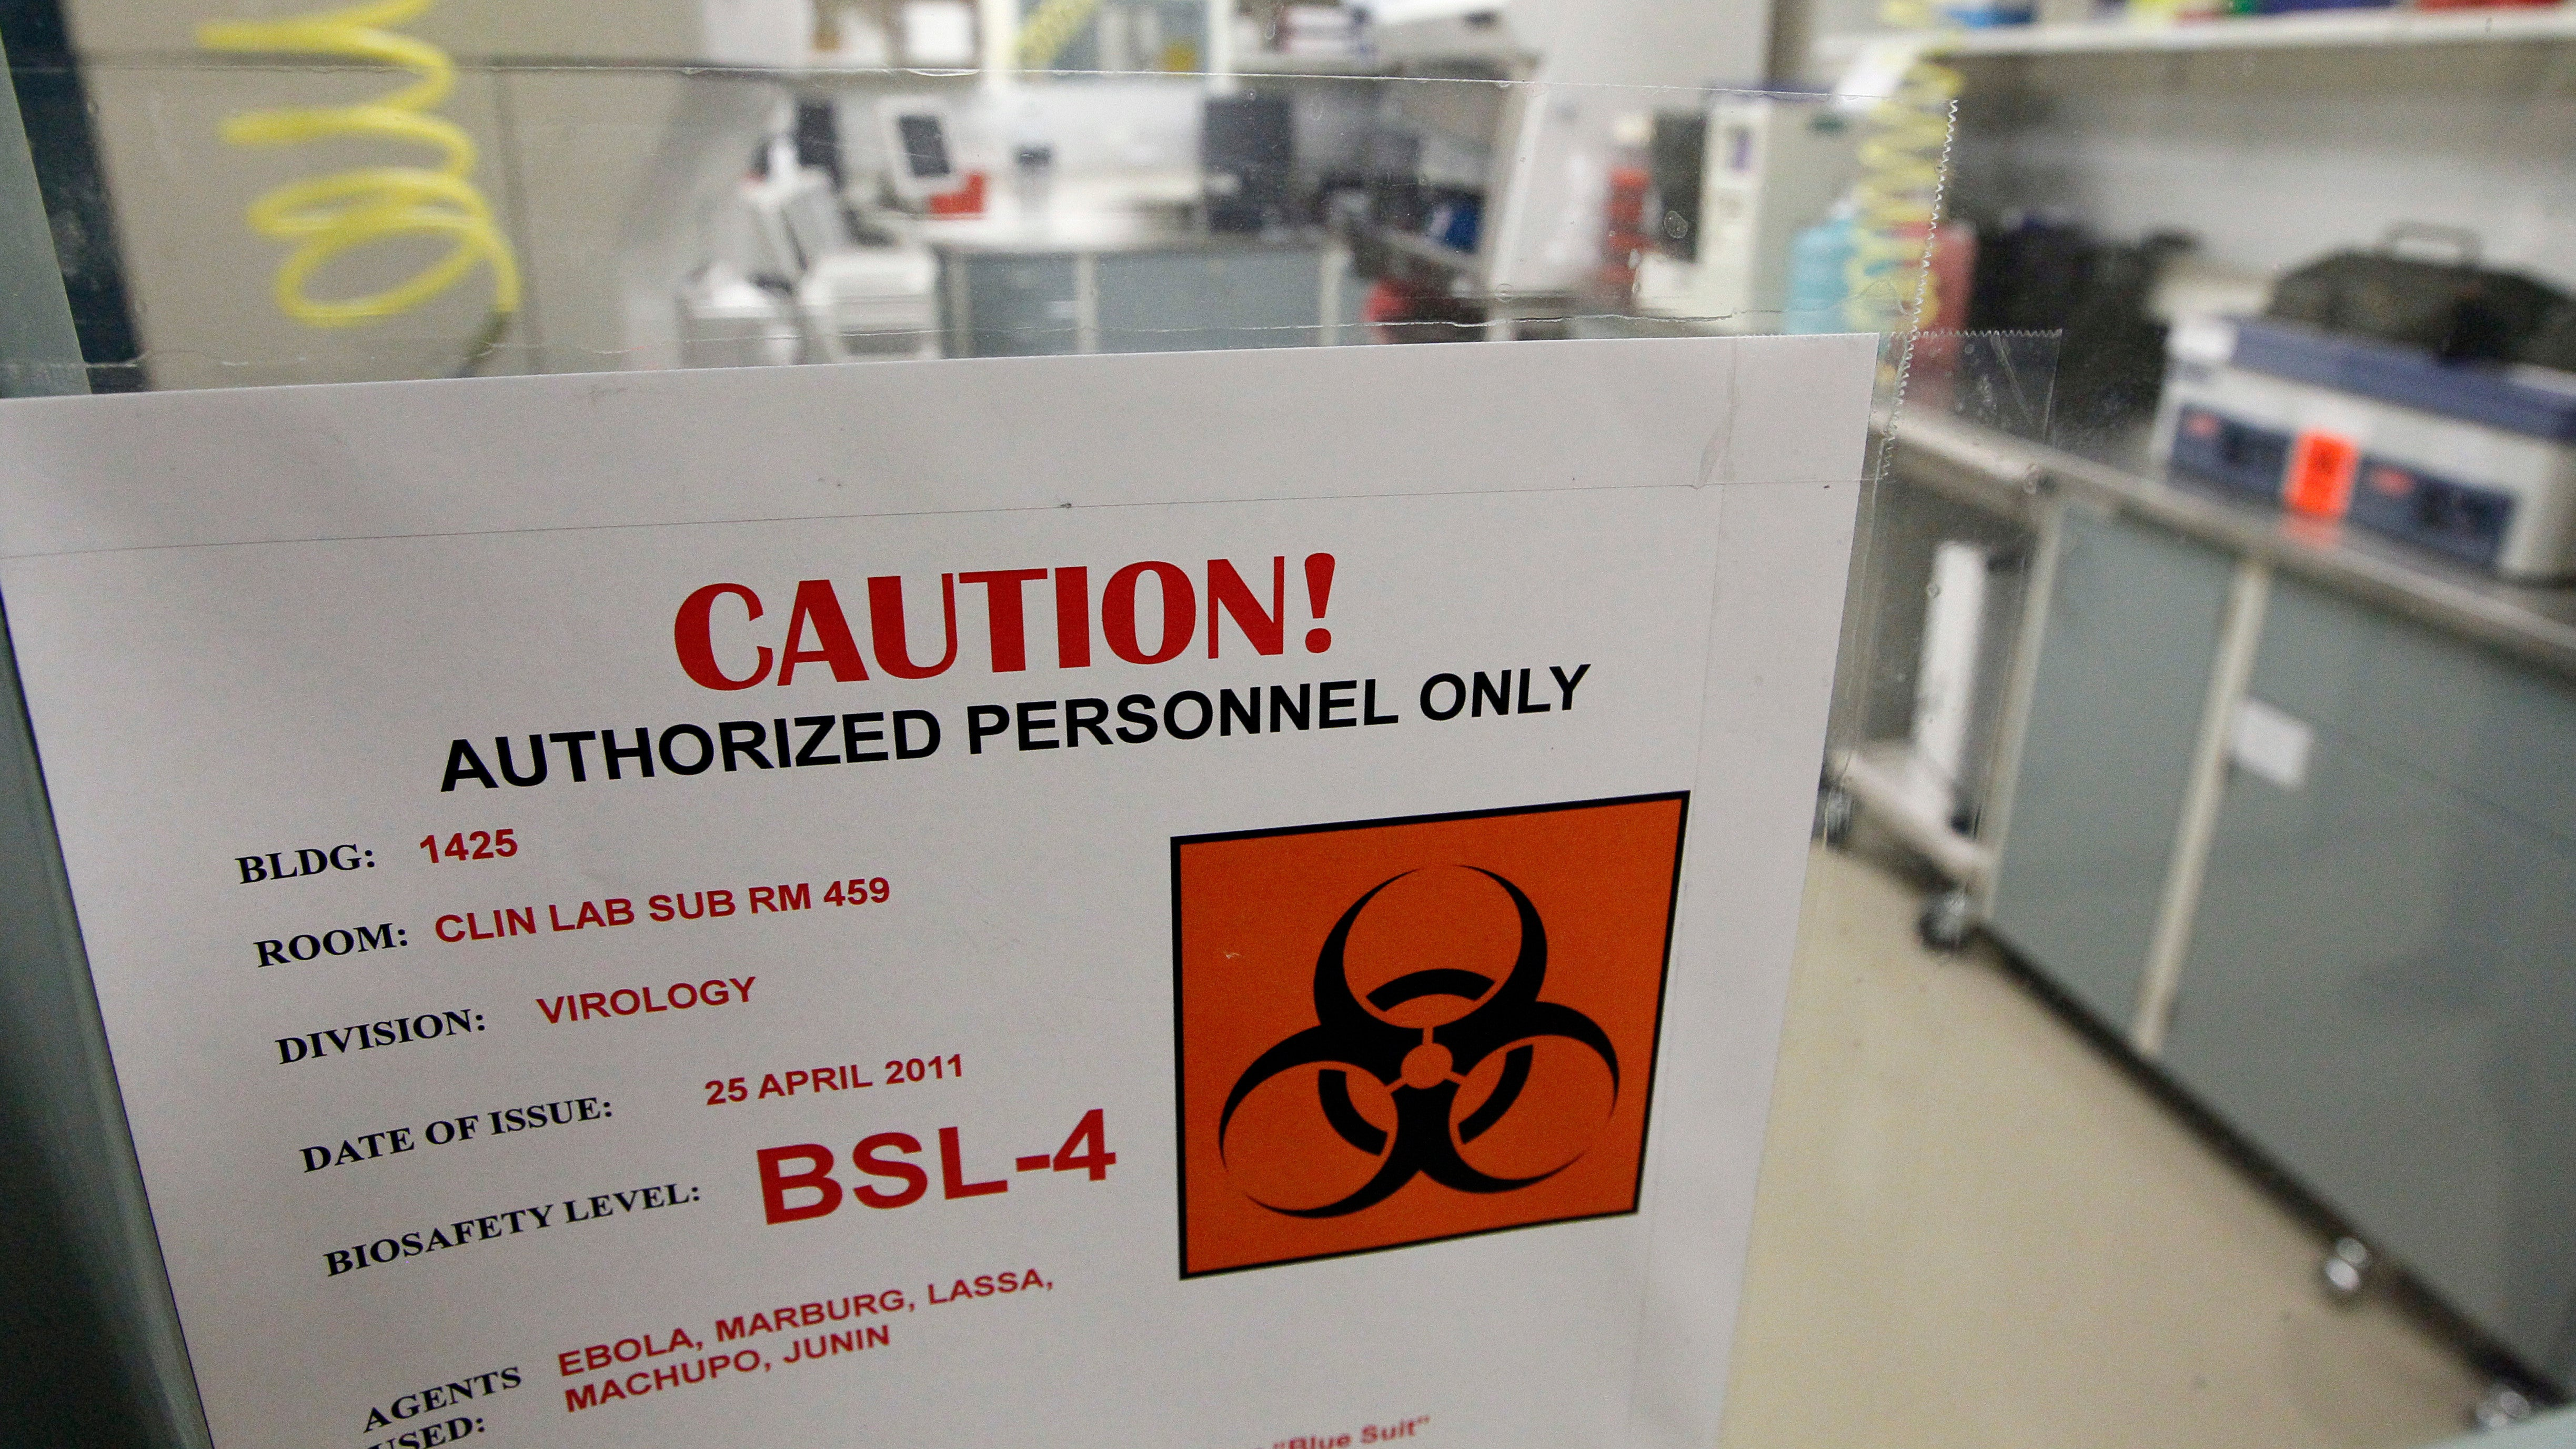 Deadly Germ Lab Shut Down Due To Sloppy Work, Leaky Equipment